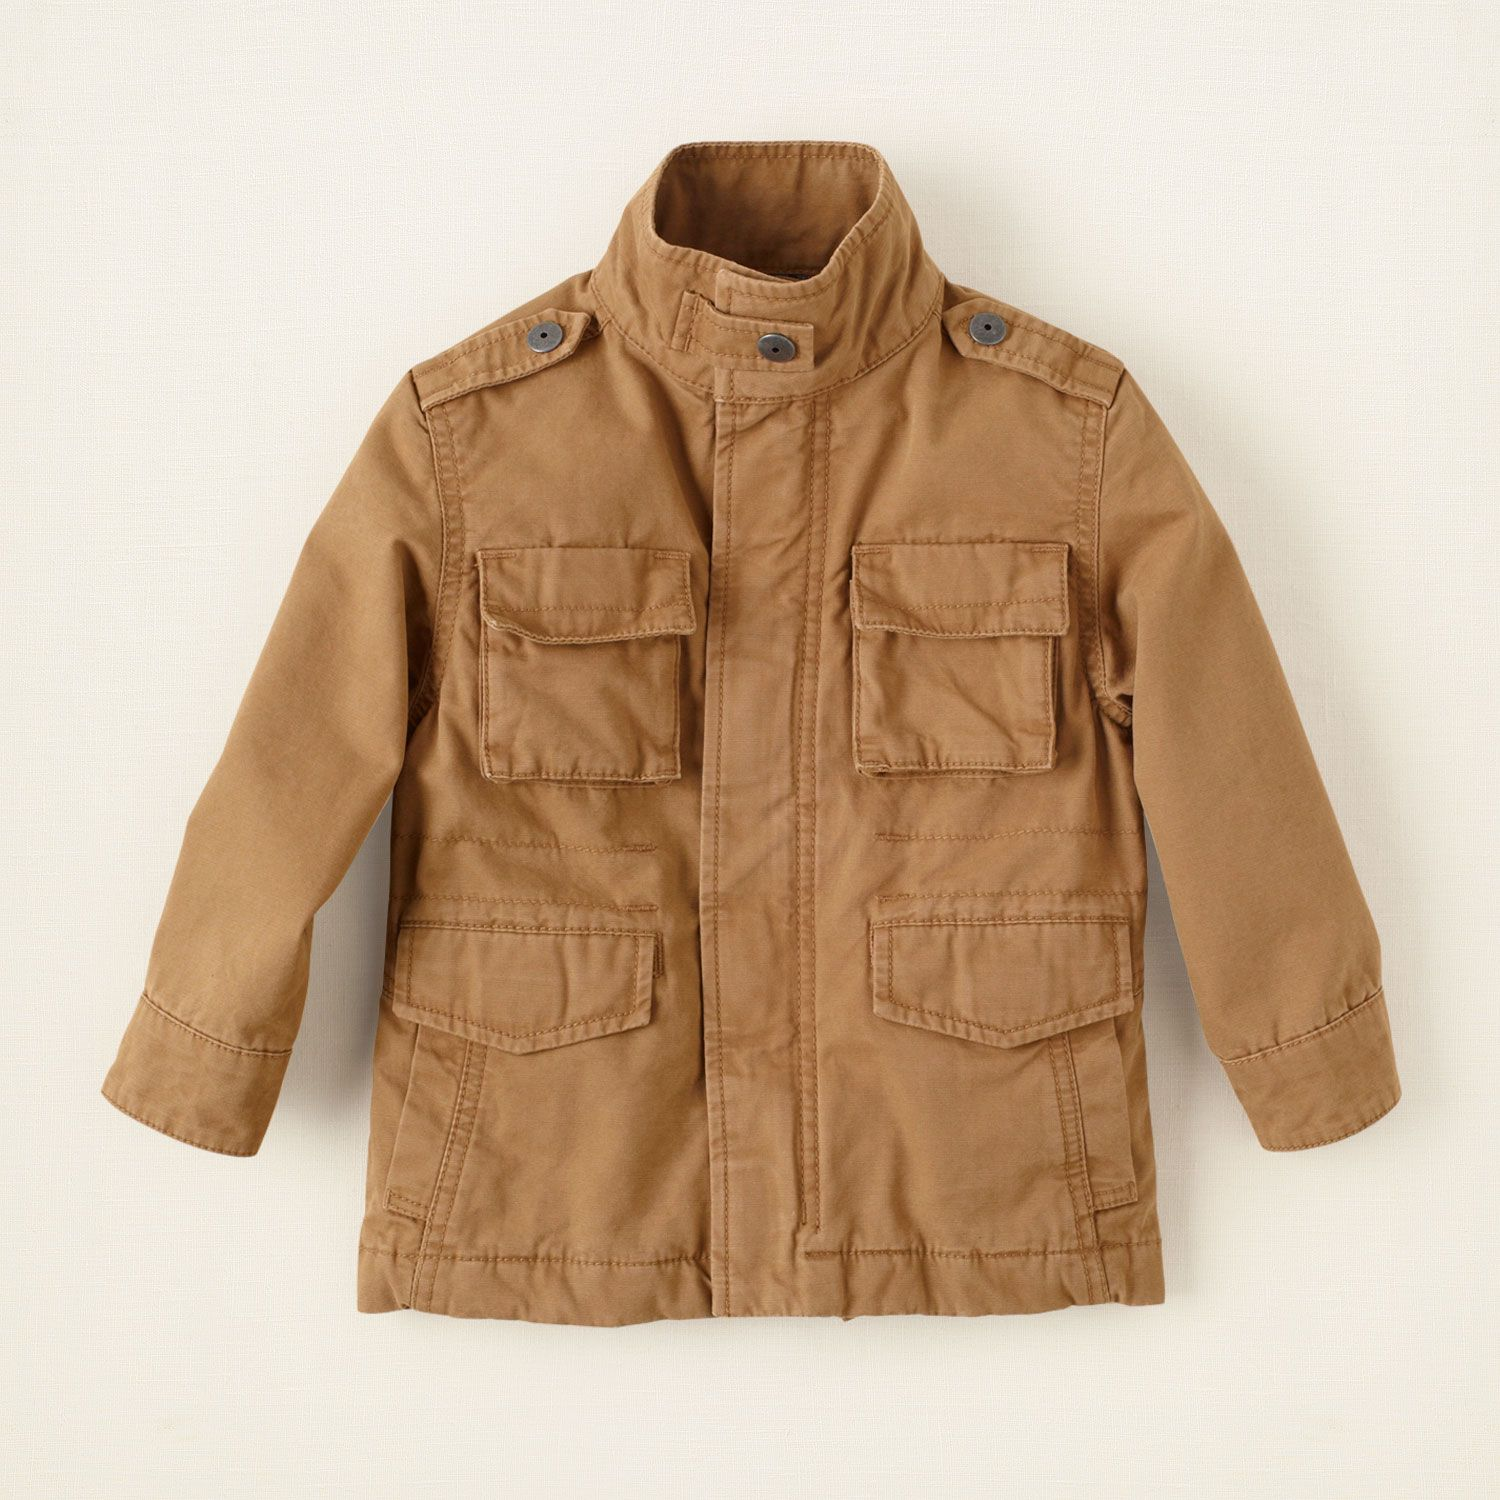 Baby Boy Jackets Vests Military Jacket Children S Clothing Kids Clothes The Children S Place 26 21 Baby Boy Jackets Kids Outfits Baby Jacket [ 1500 x 1500 Pixel ]